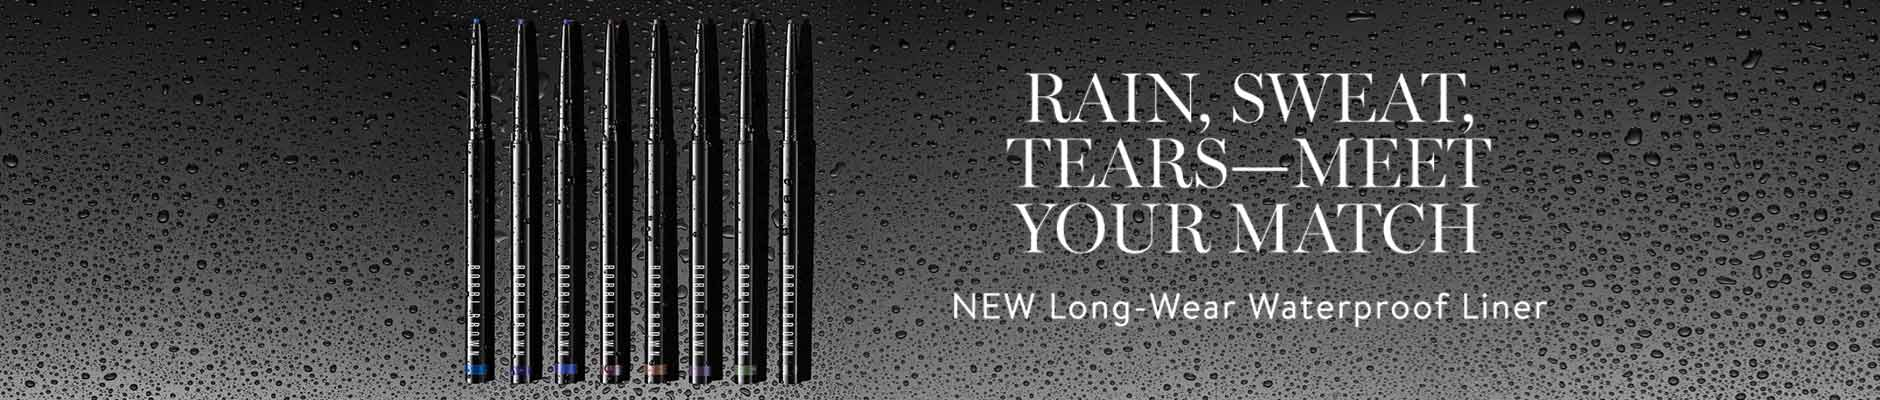 Rain, sweat, tears - meet your match, new long-wear waterproof liner